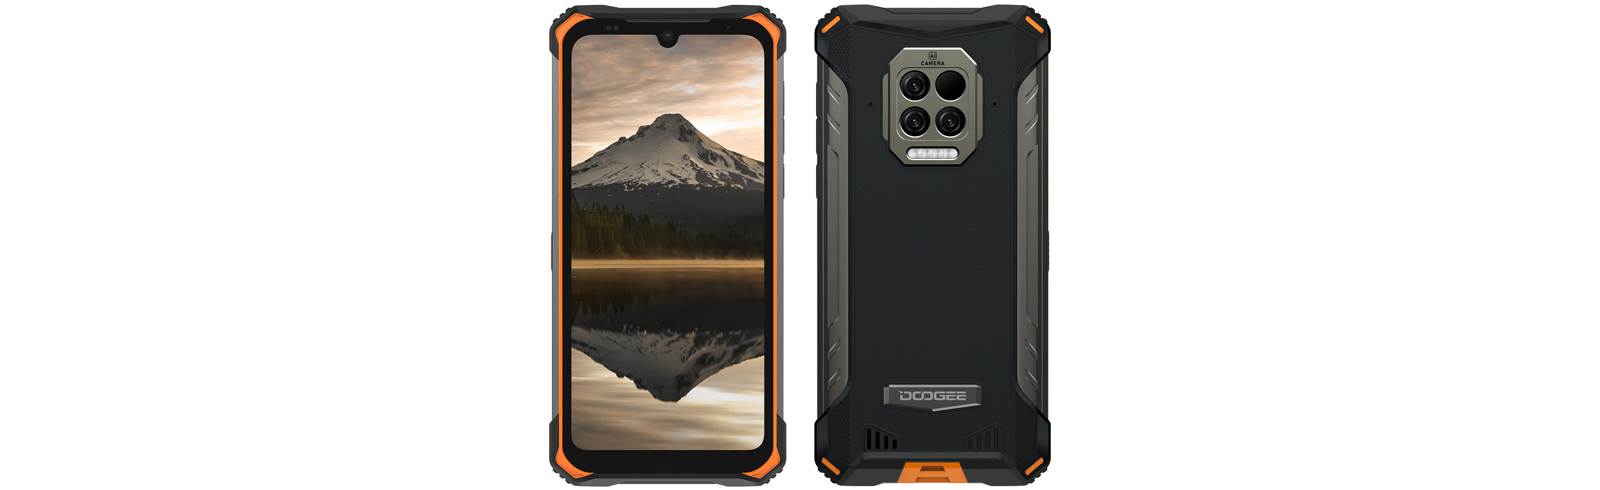 The rugged Doogee S86 Pro goes official with an infrared thermometer